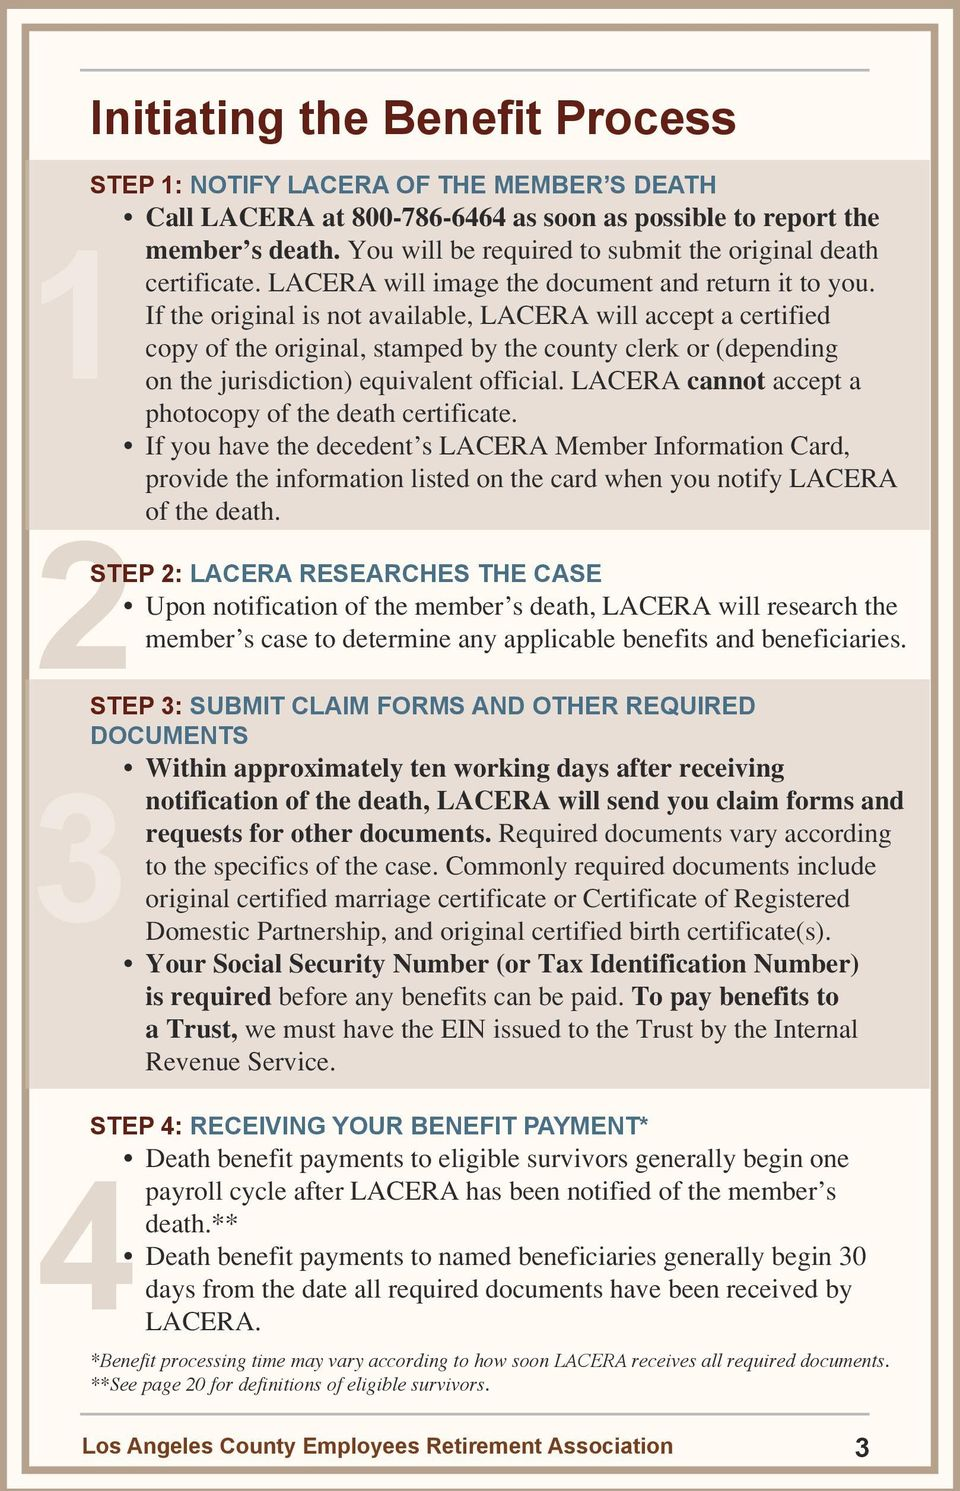 If the original is not available, LACERA will accept a certified copy of the original, stamped by the county clerk or (depending on the jurisdiction) equivalent official.